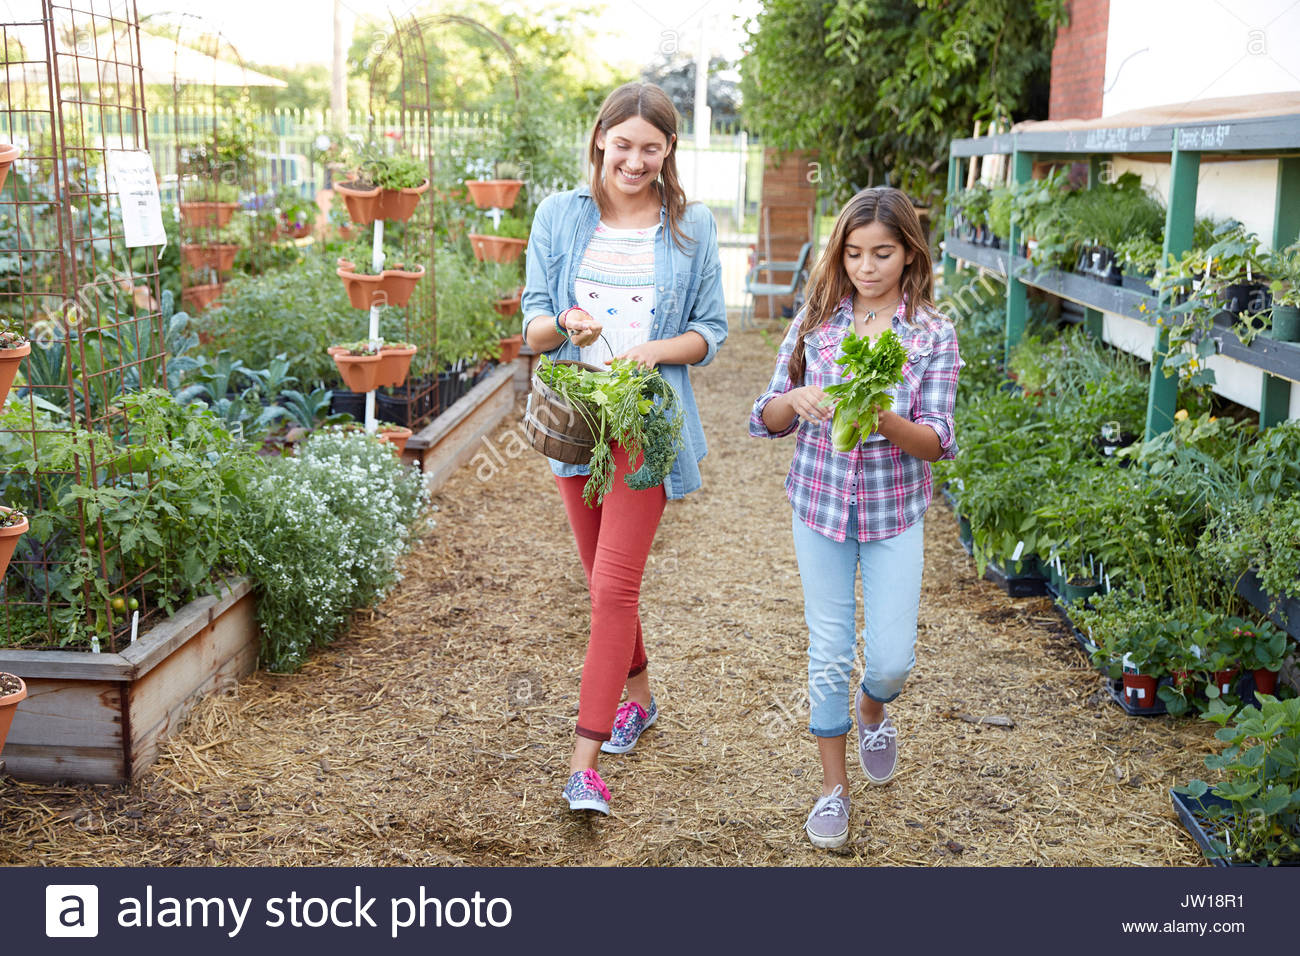 Latina sisters shopping in plant nursery - Stock Image